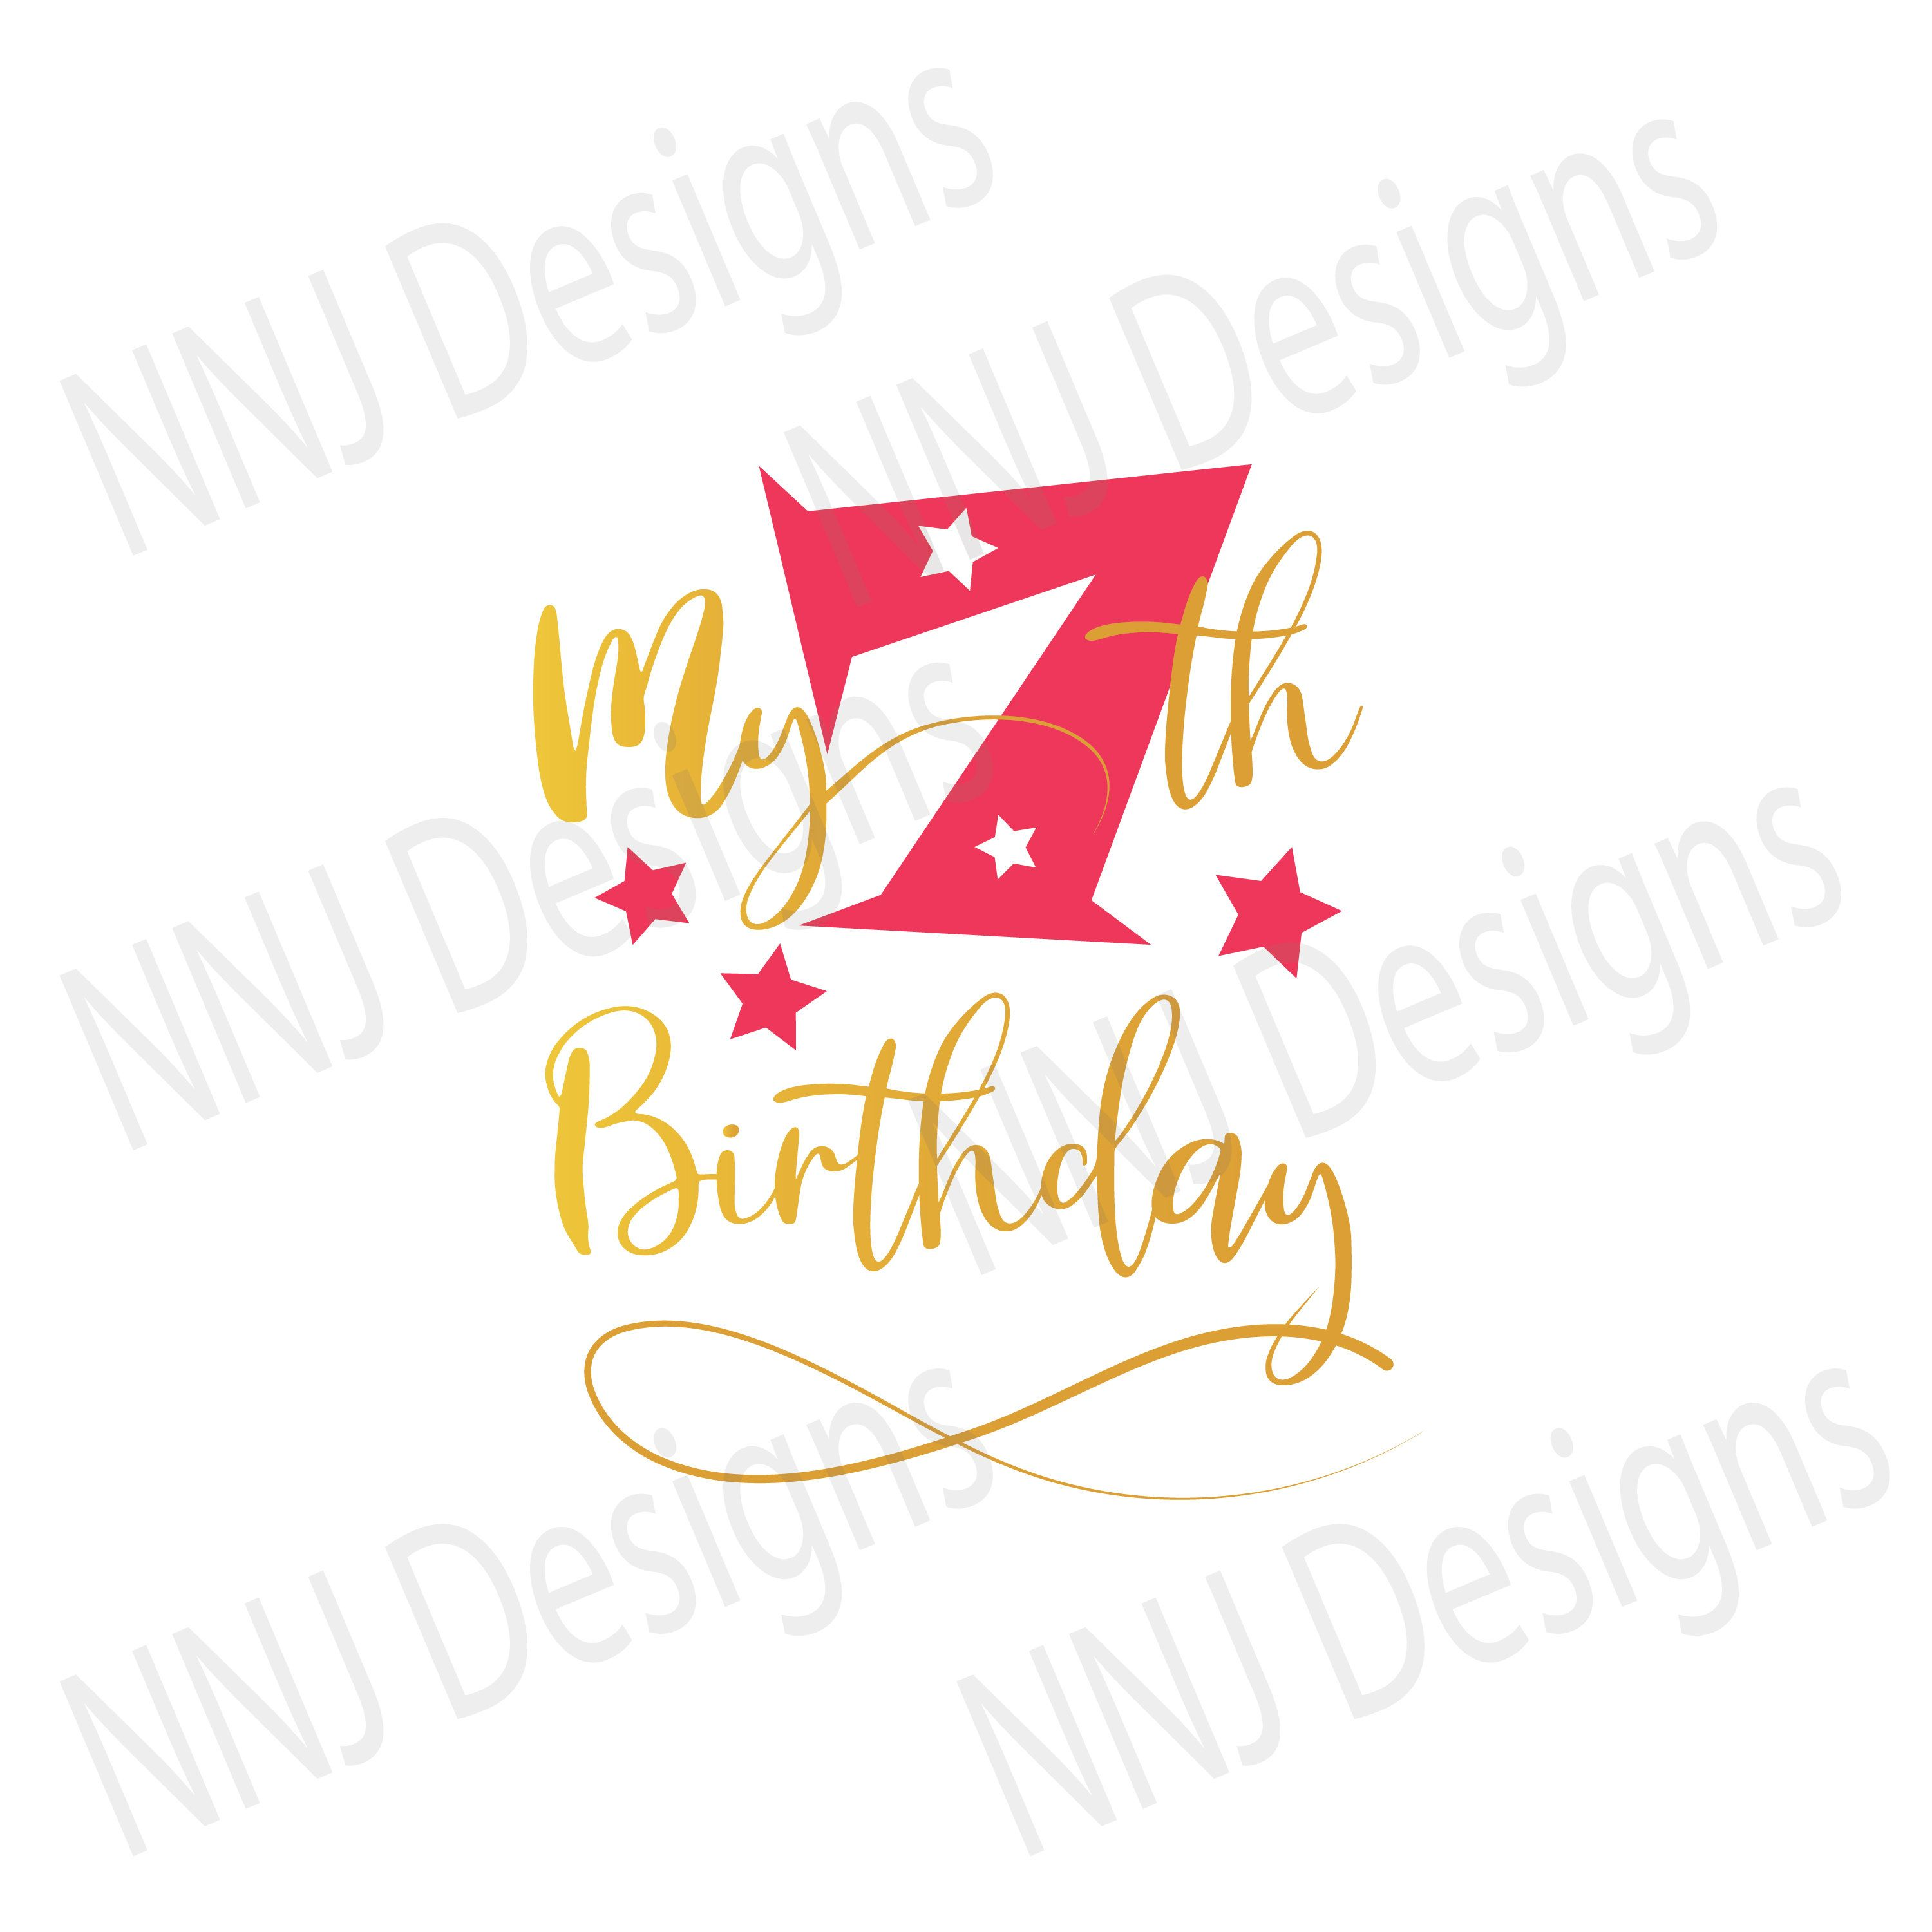 Download My 7th Seventh Birthday SVG Seven Year Old Party Boy Girl ...